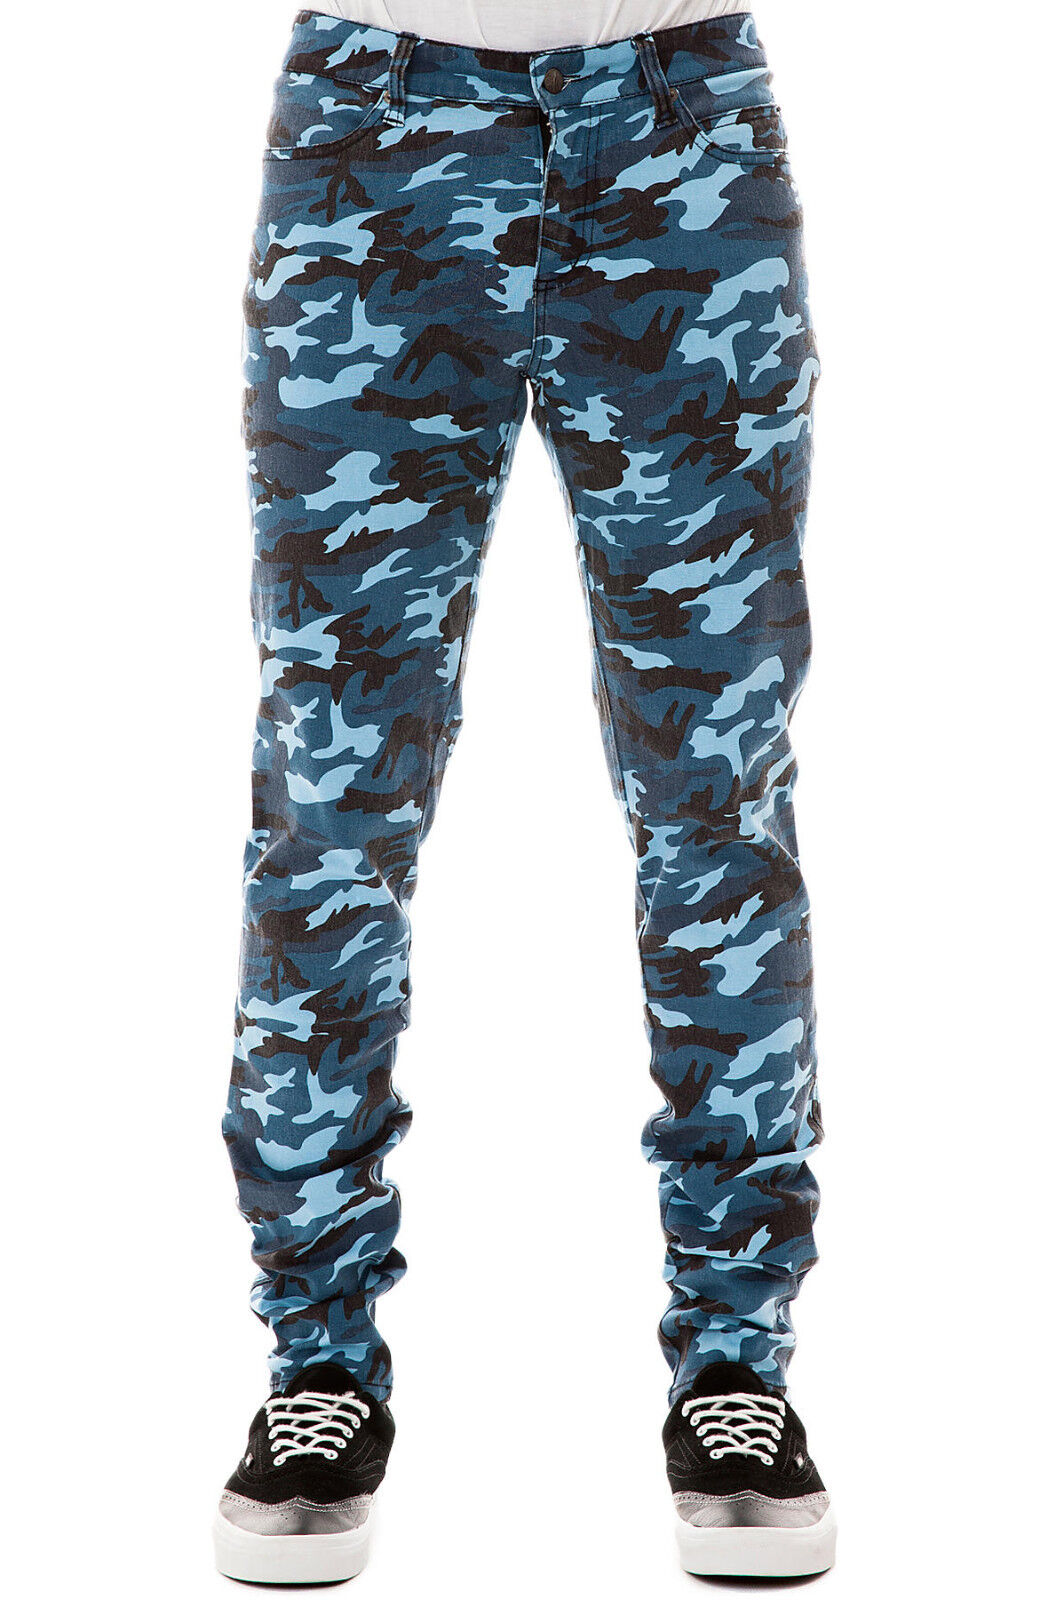 TRIPP EXPLOITED CAMOUFLAGE SKINNY JEANS ROCKER UNISEX FIT PUNK ROCK ARMY PANTS Clothing, Shoes & Accessories